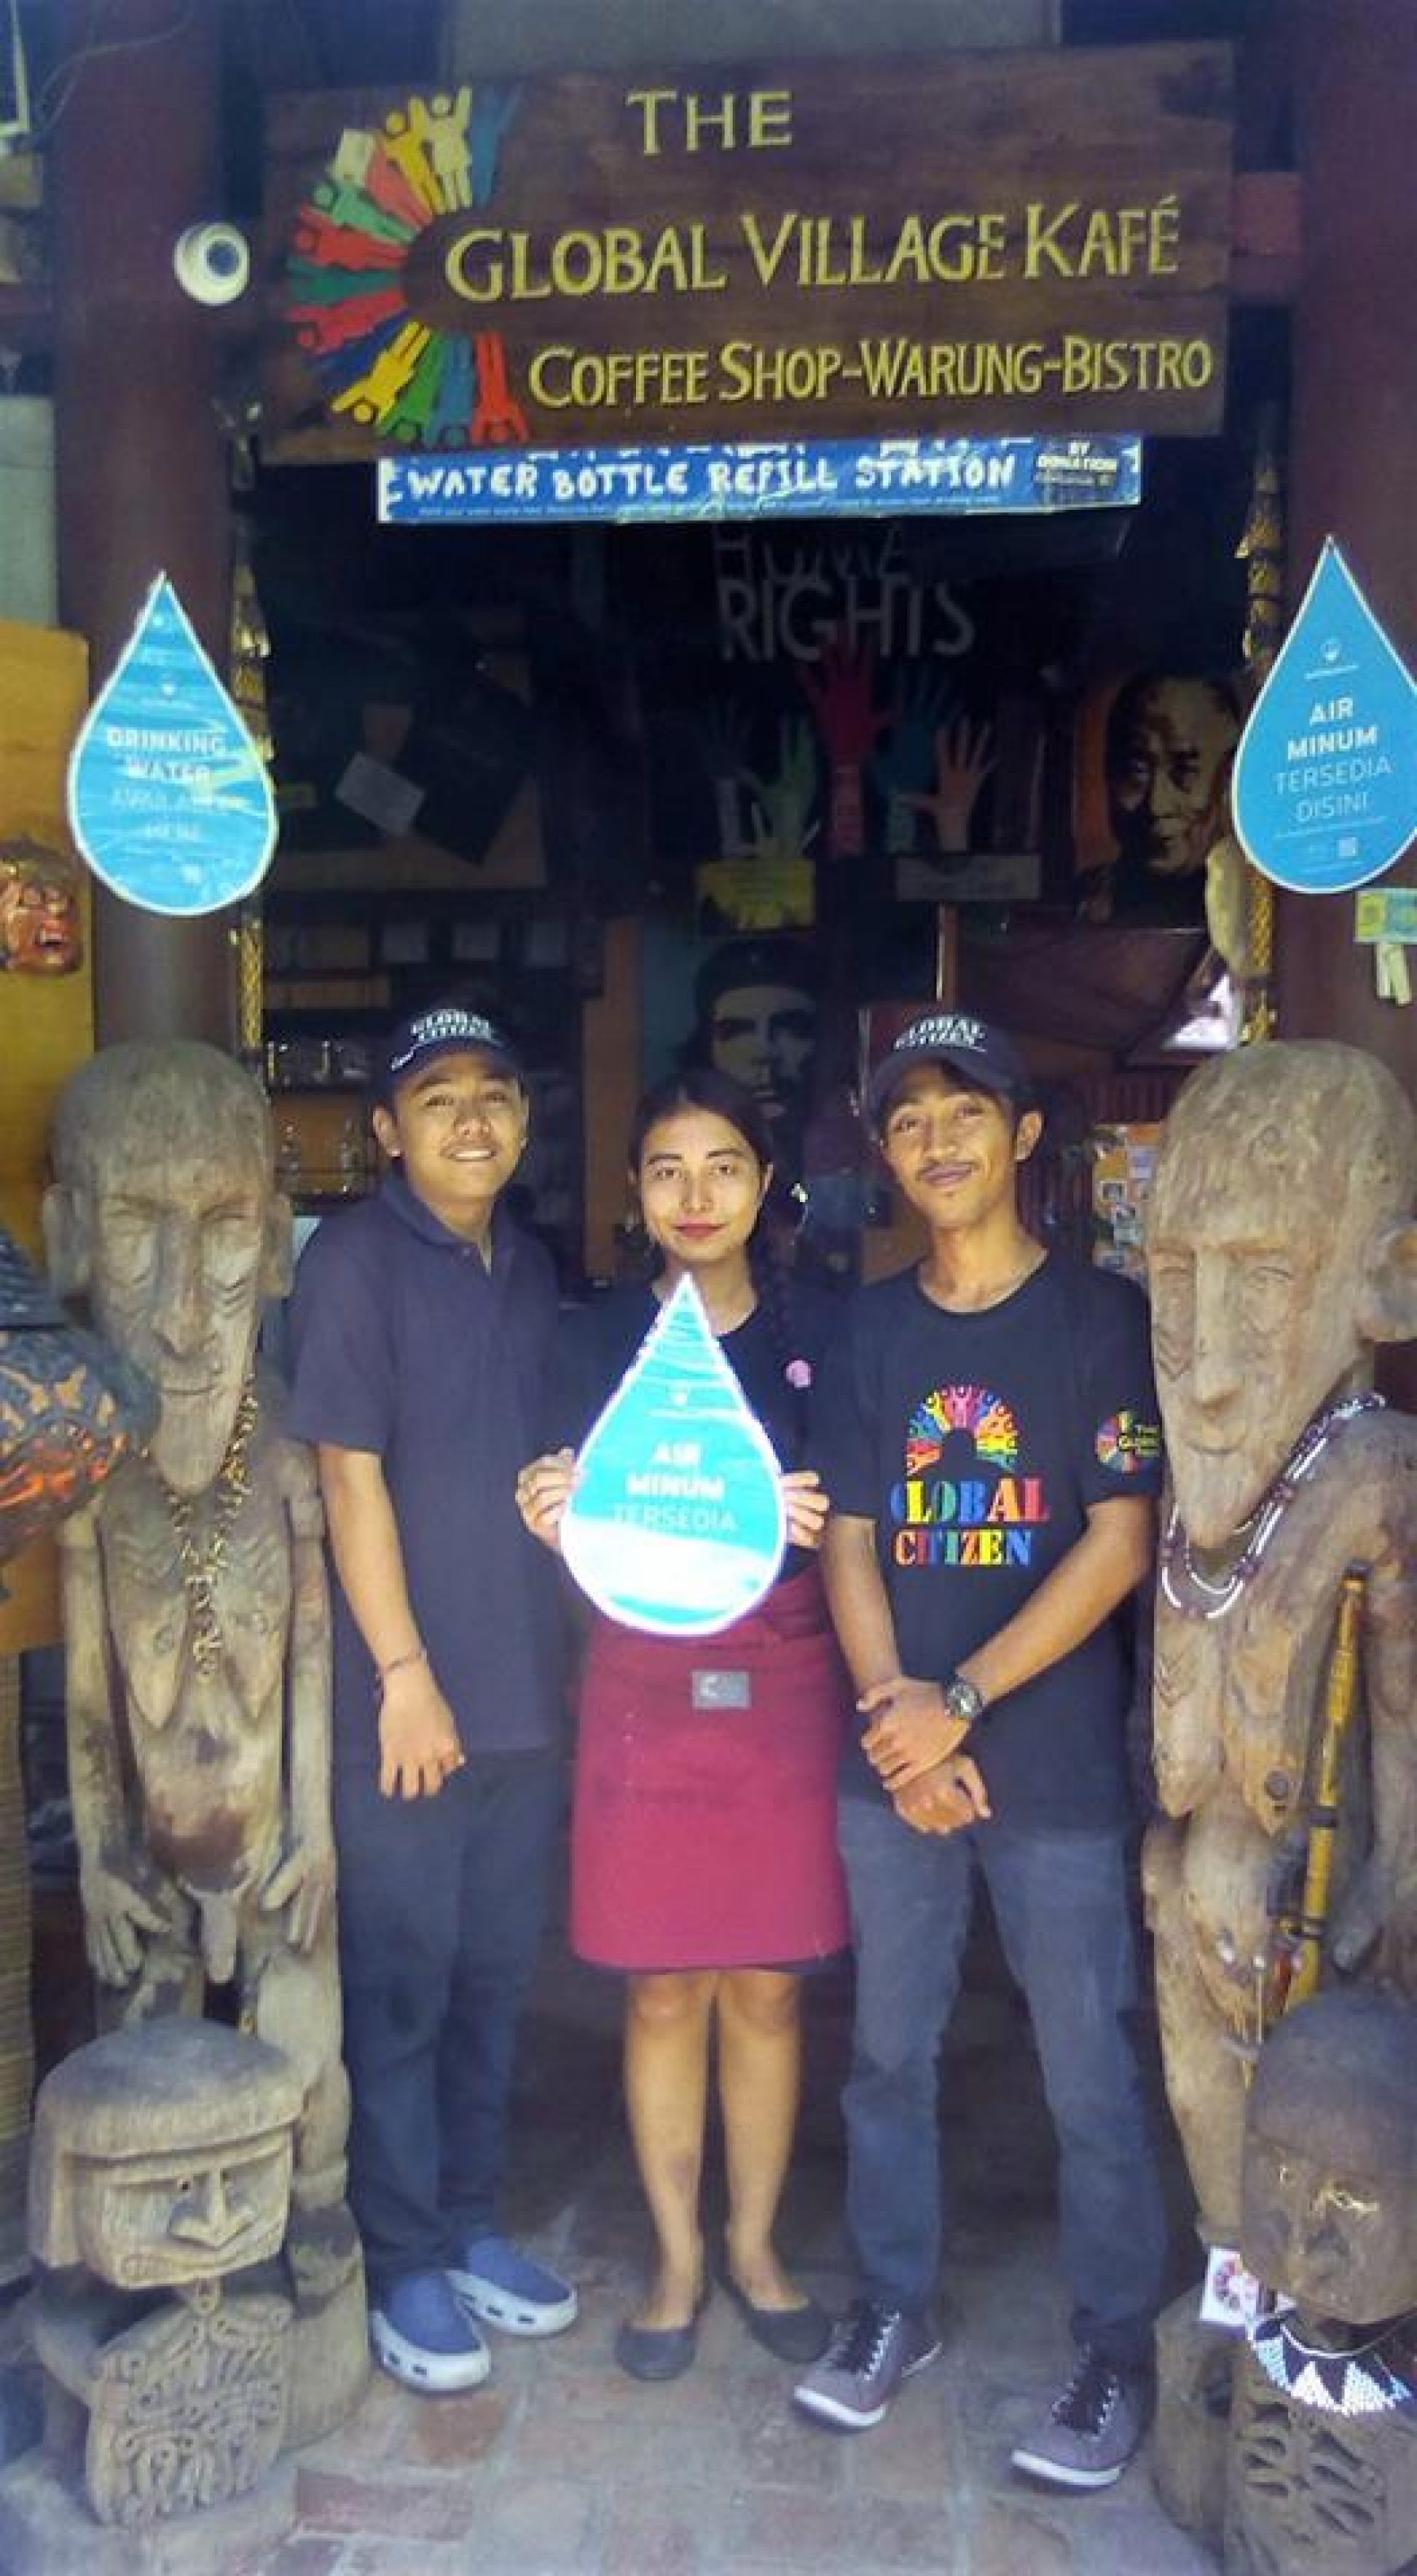 Global Village Kafe in Lovina, Now an official Water Bottle Refill station